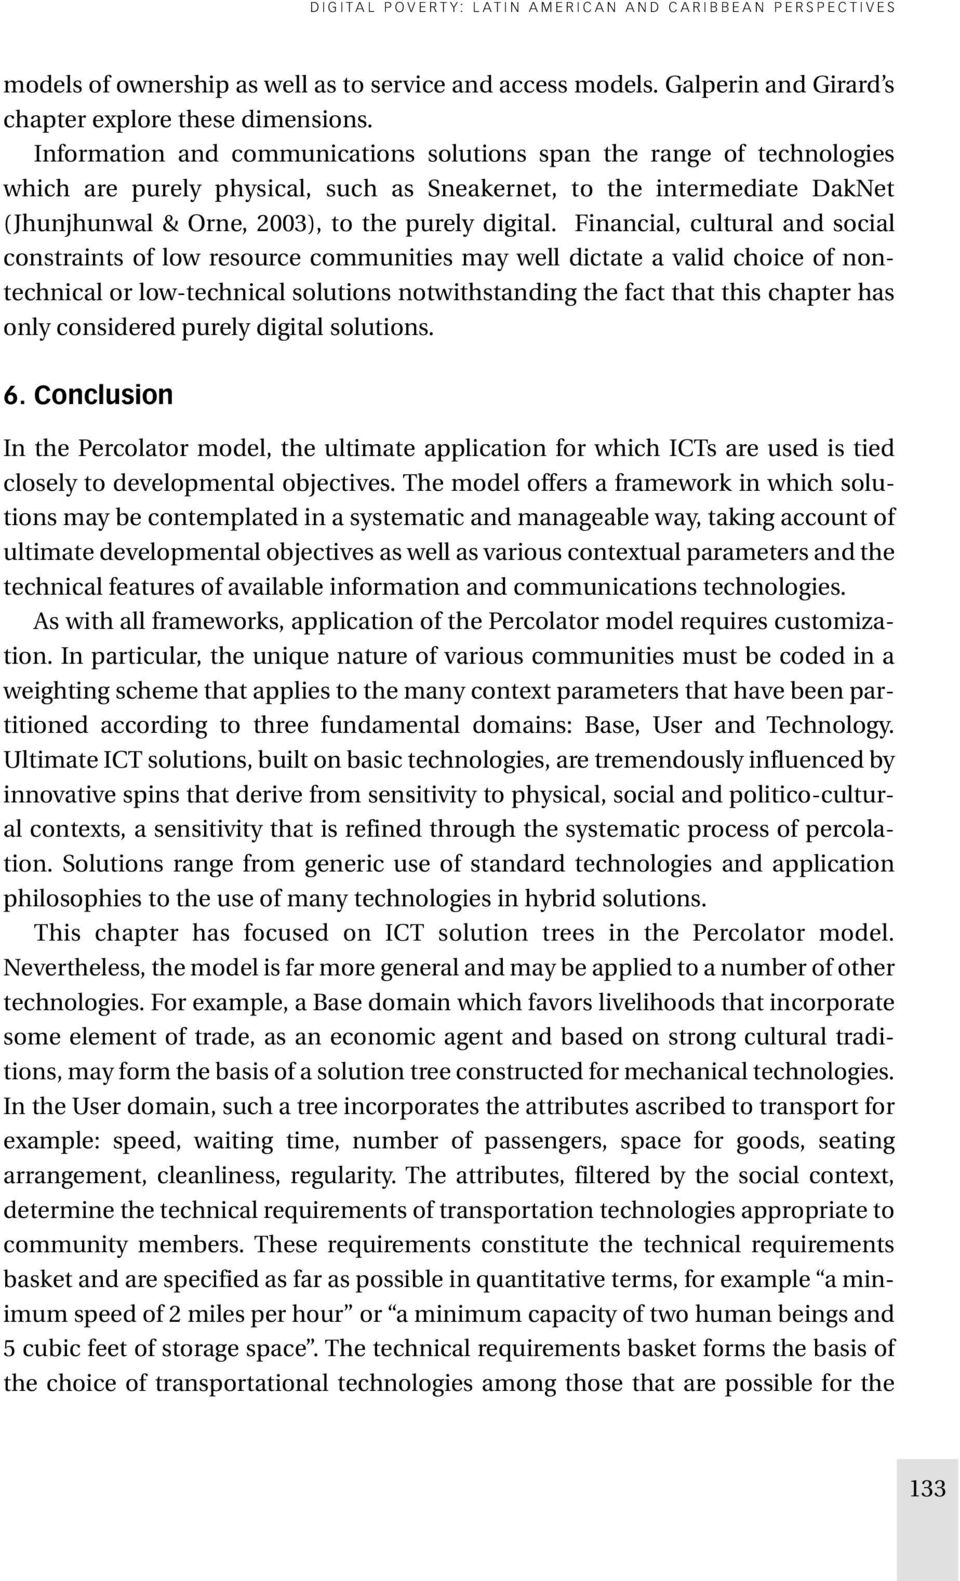 Financial, cultural and social constraints of low resource communities may well dictate a valid choice of nontechnical or low-technical solutions notwithstanding the fact that this chapter has only